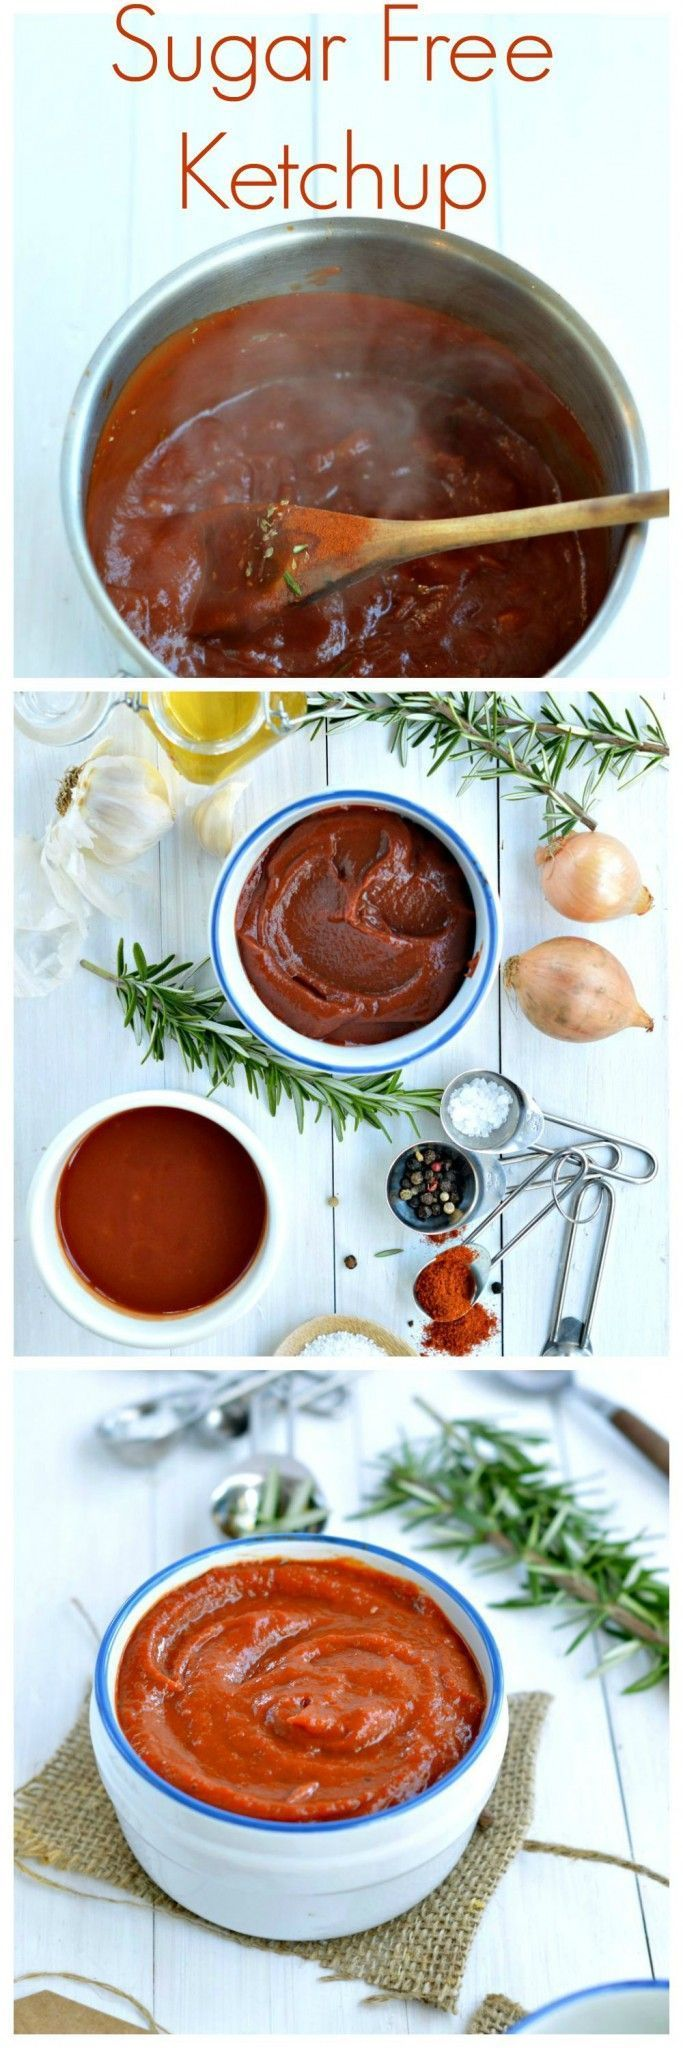 This Sugar Free Ketchup is the healthiest dip on earth ideal for people on a diabetic diet.